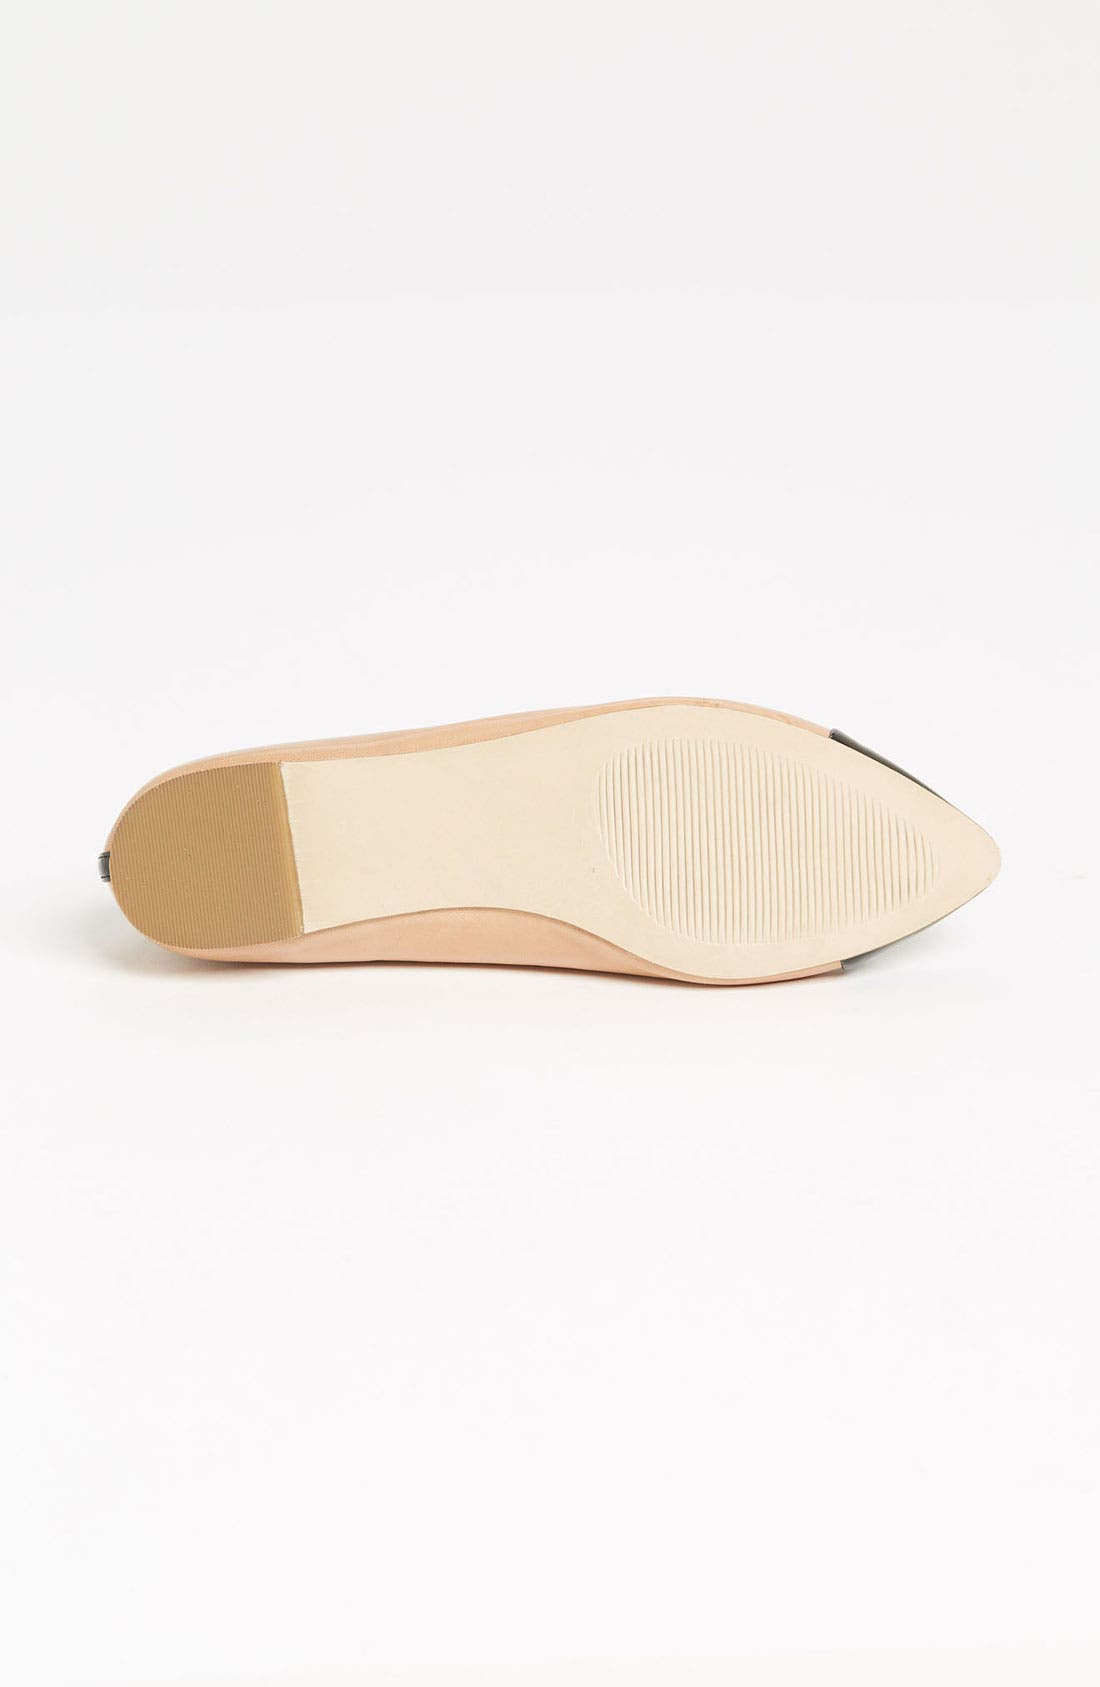 ,                             Julianne Hough for Sole Society 'Addy' Flat,                             Alternate thumbnail 14, color,                             101